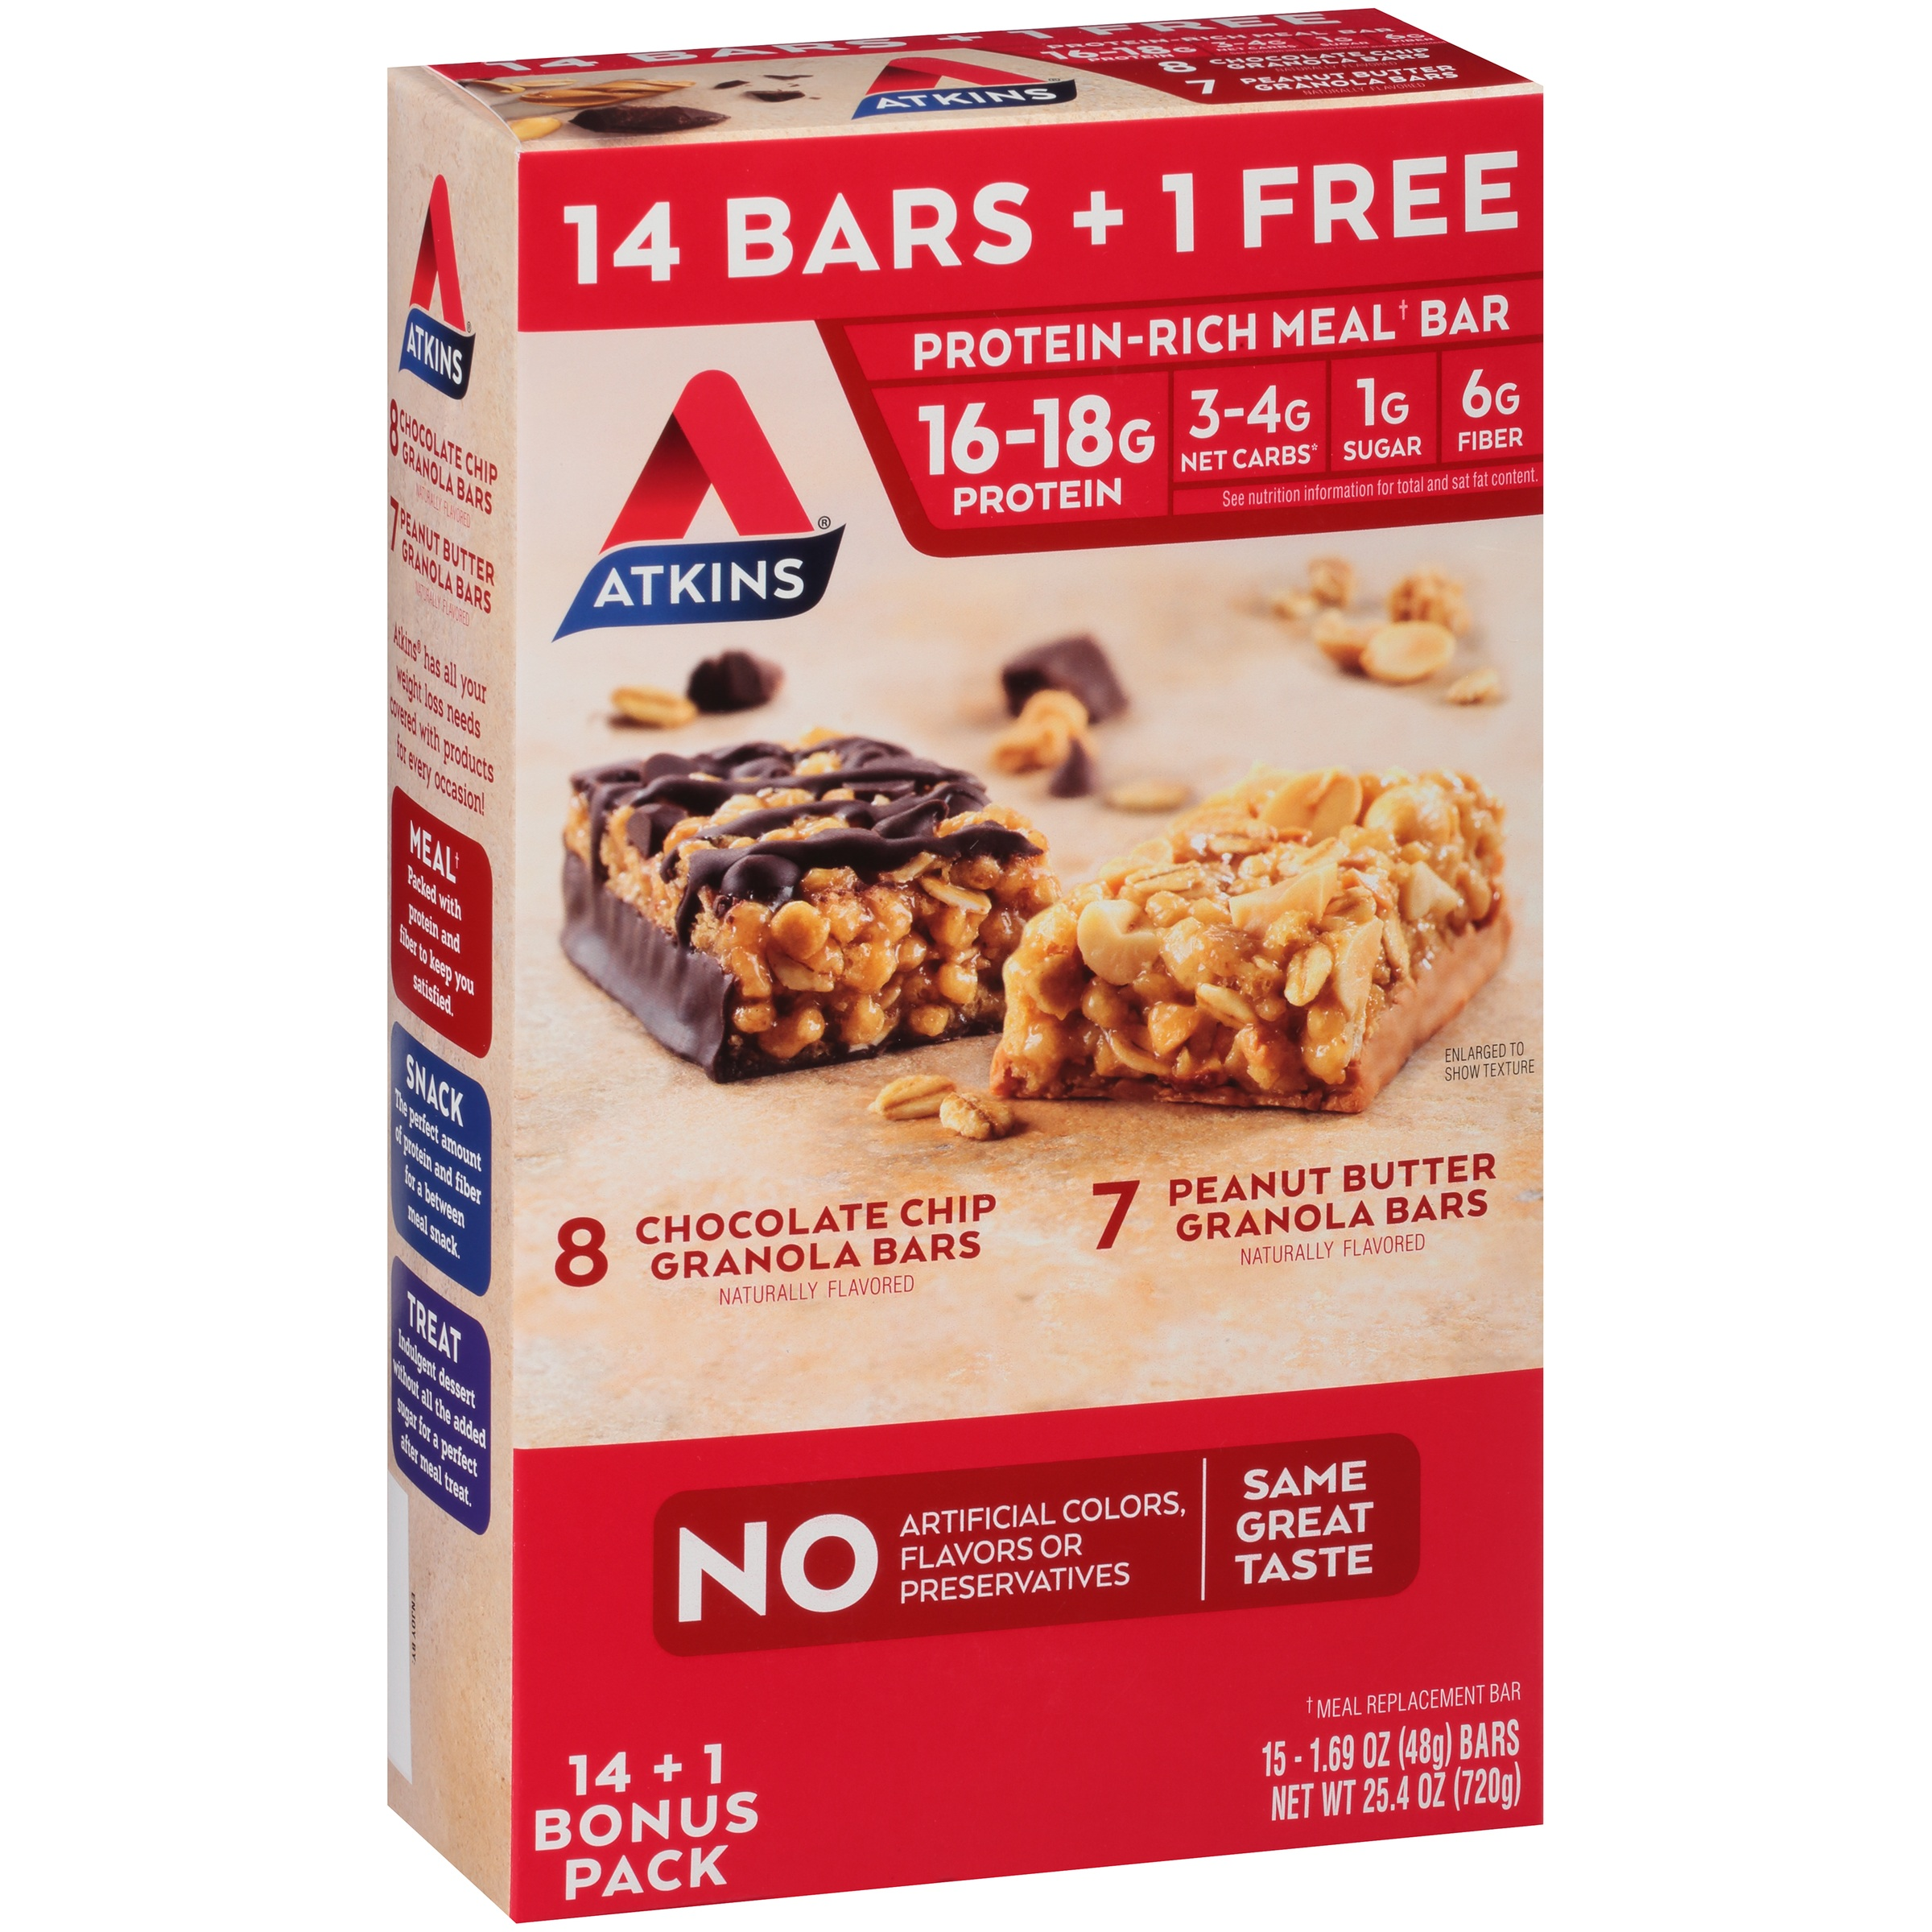 Atkins® Chocolate Chip & Peanut Butter Granola Bars Variety Pack 15 ct Box